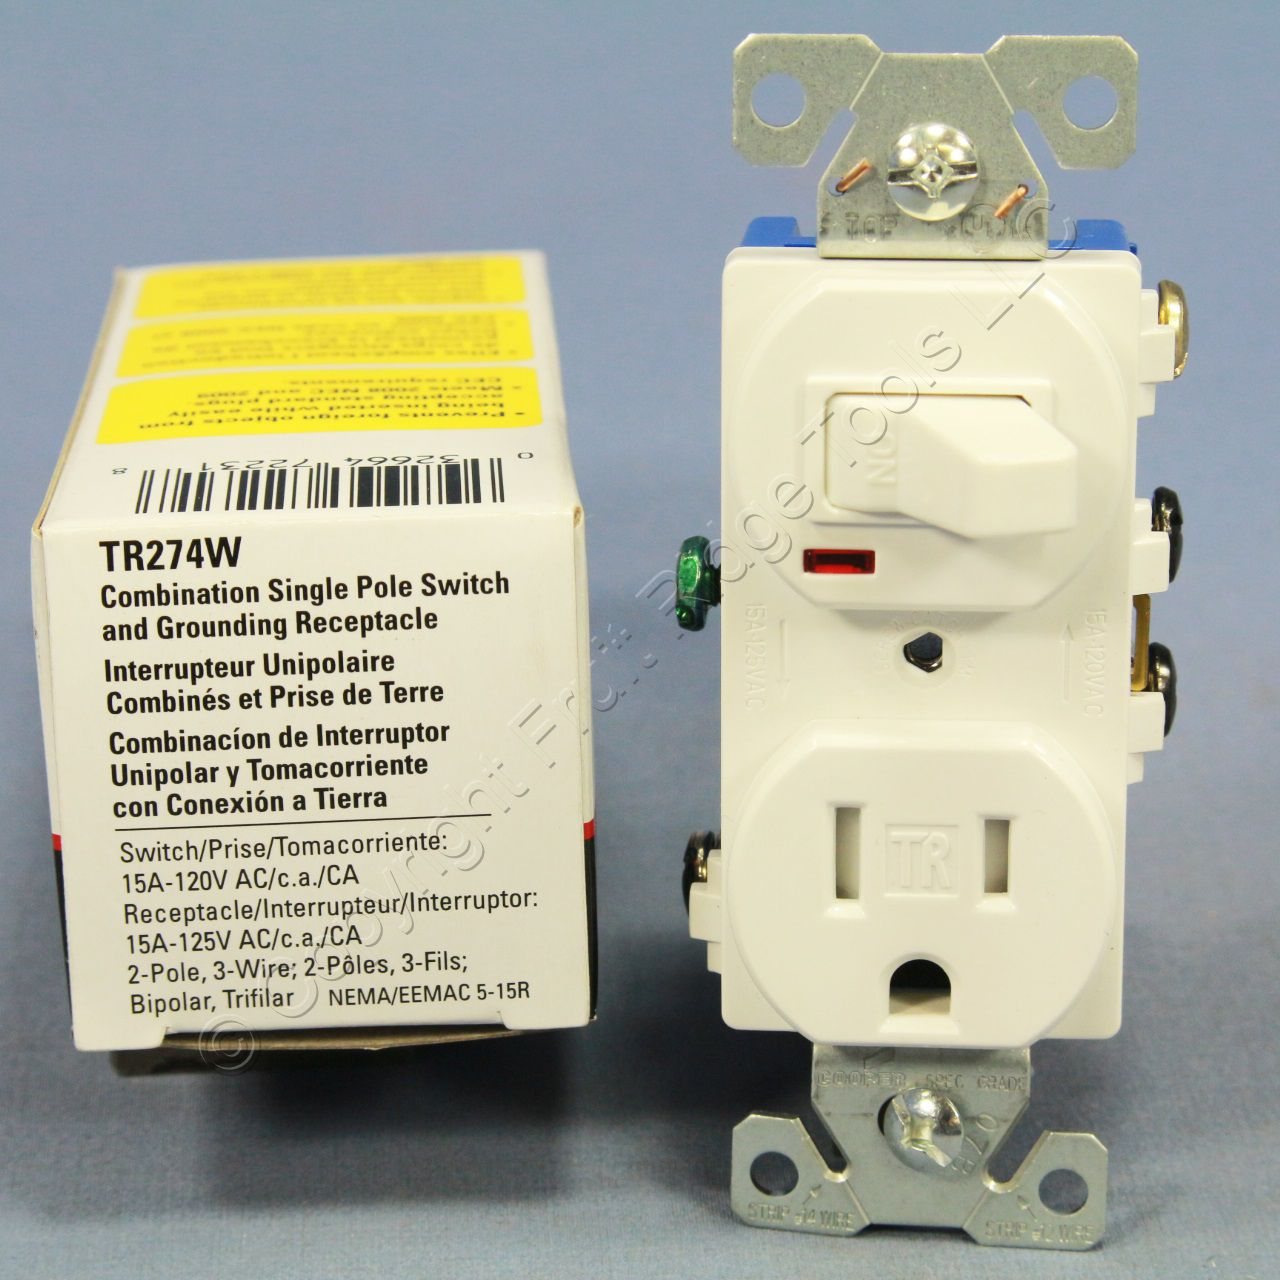 Light Switch To Gfci Outlet Wiring Diagram Moreover Gfci Outlet Wiring